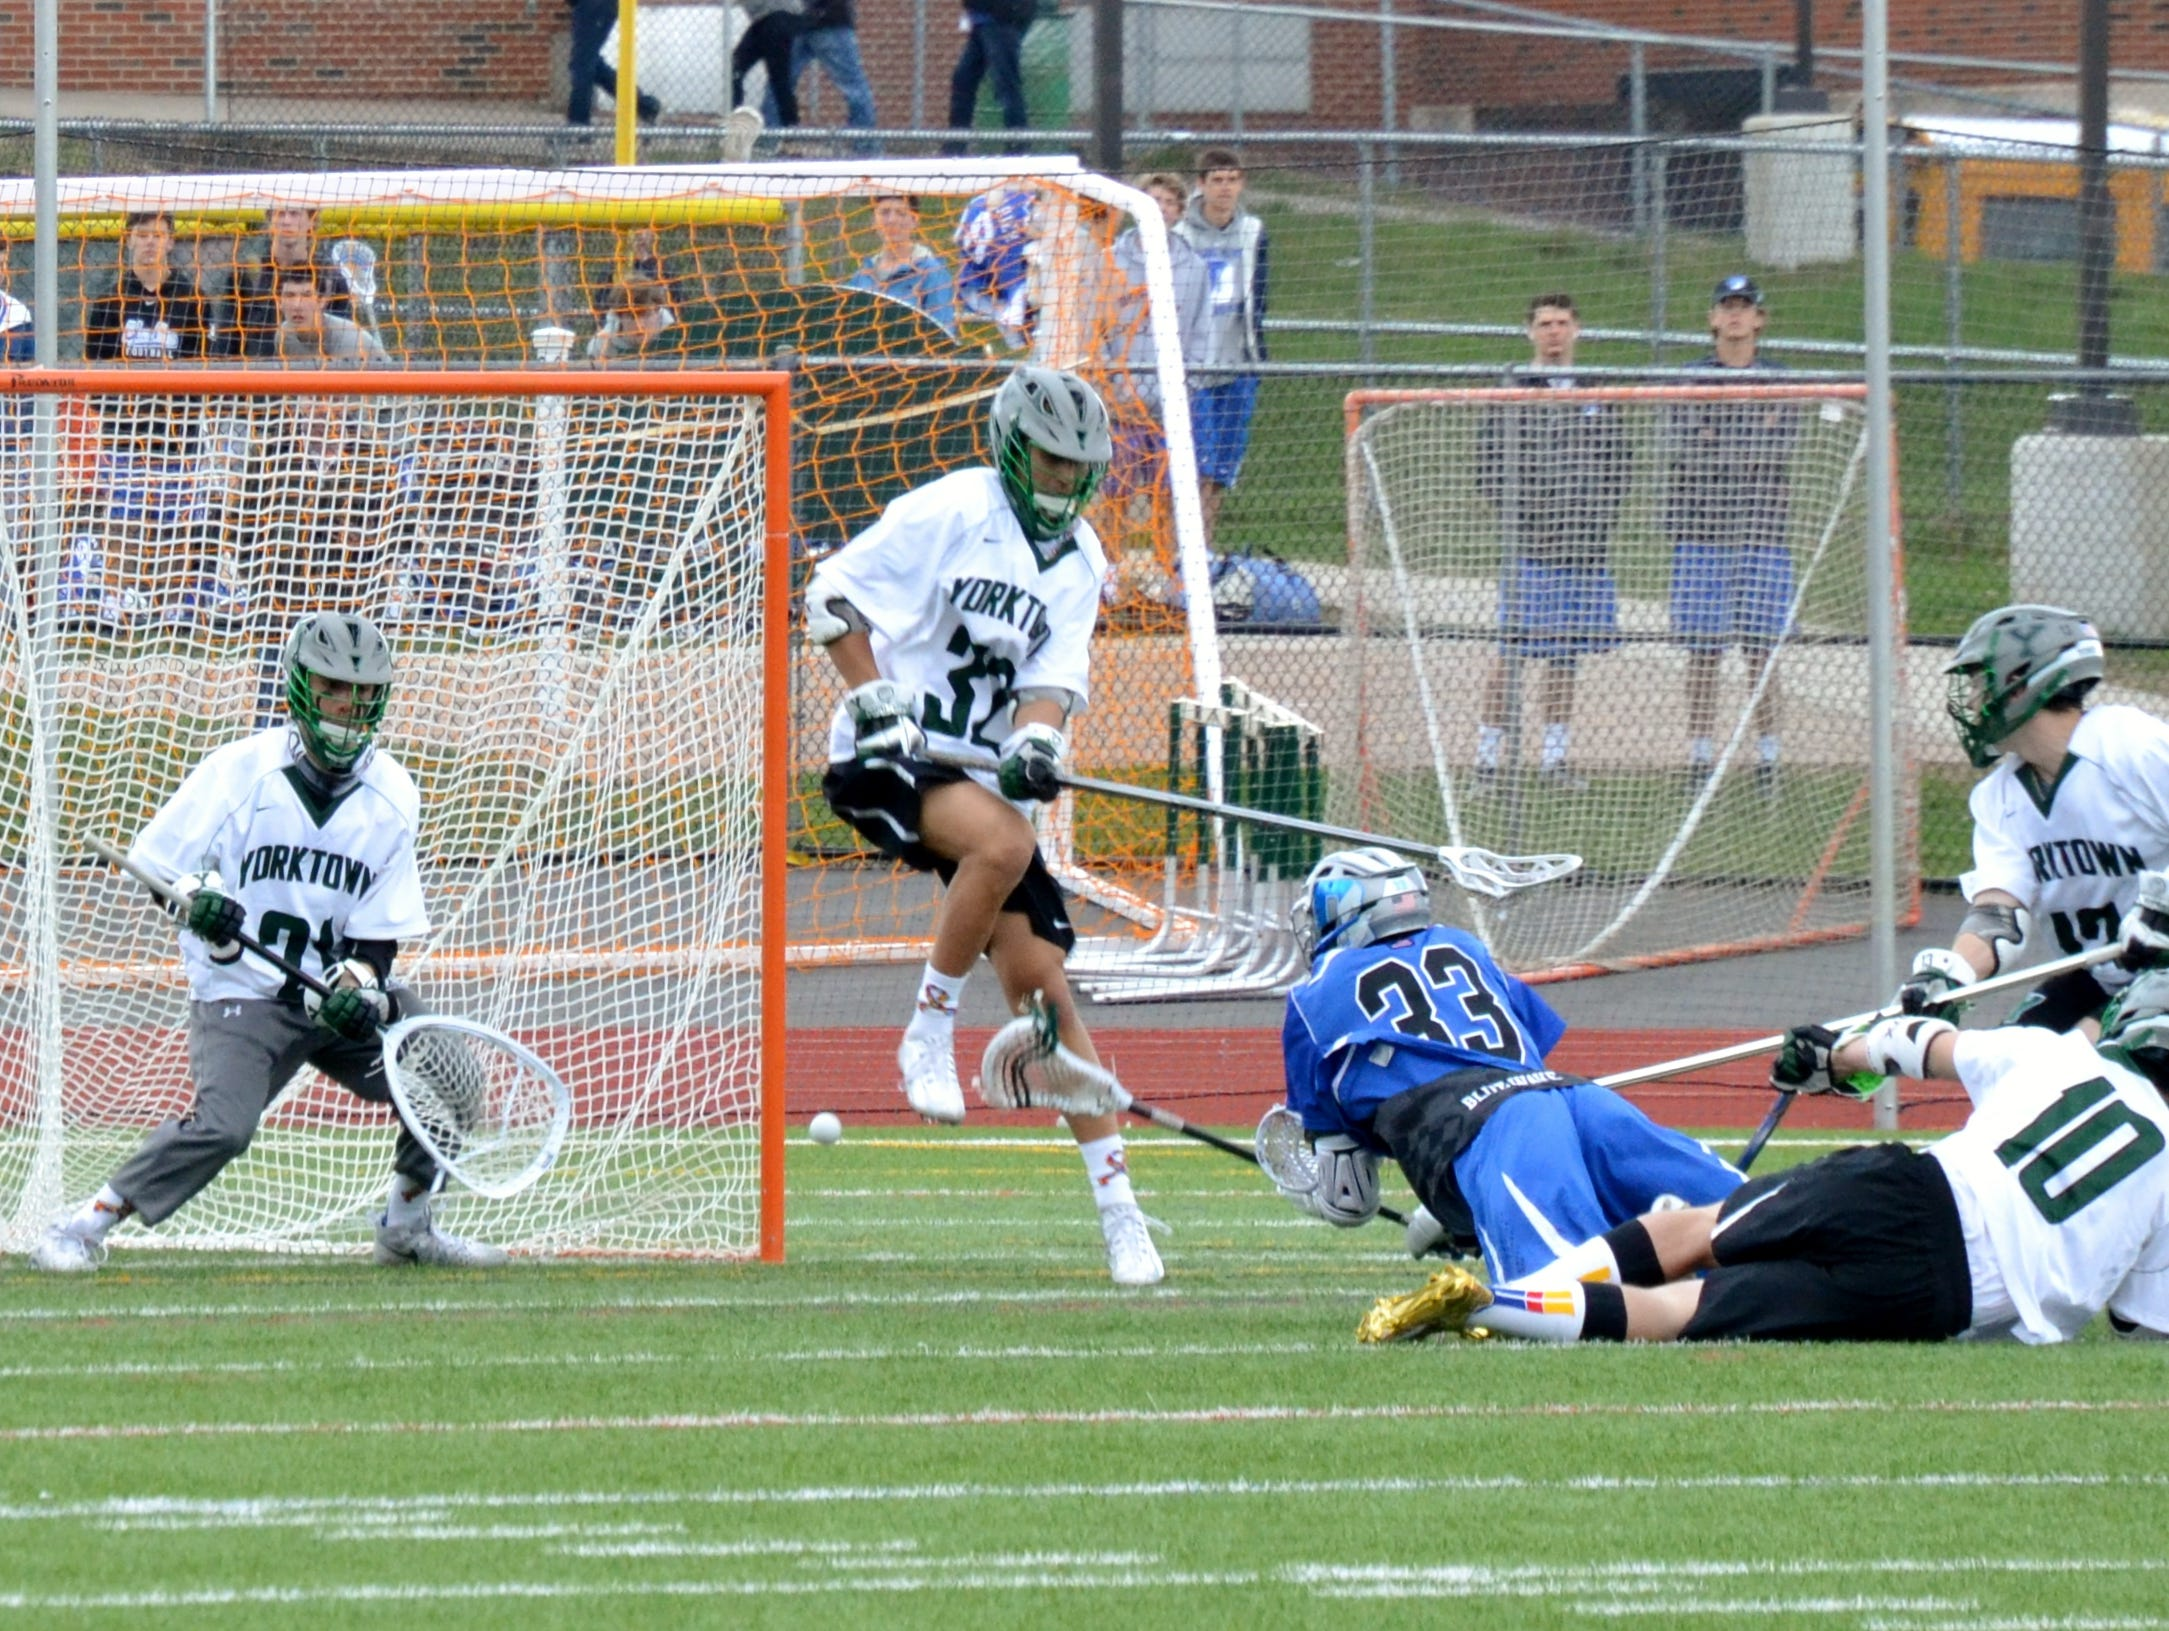 Yorktown goalie Liam Donnelly lines up a shot from Darien attackman Kevin Lindley in the second half of the Huskers' 12-3 loss on Saturday.